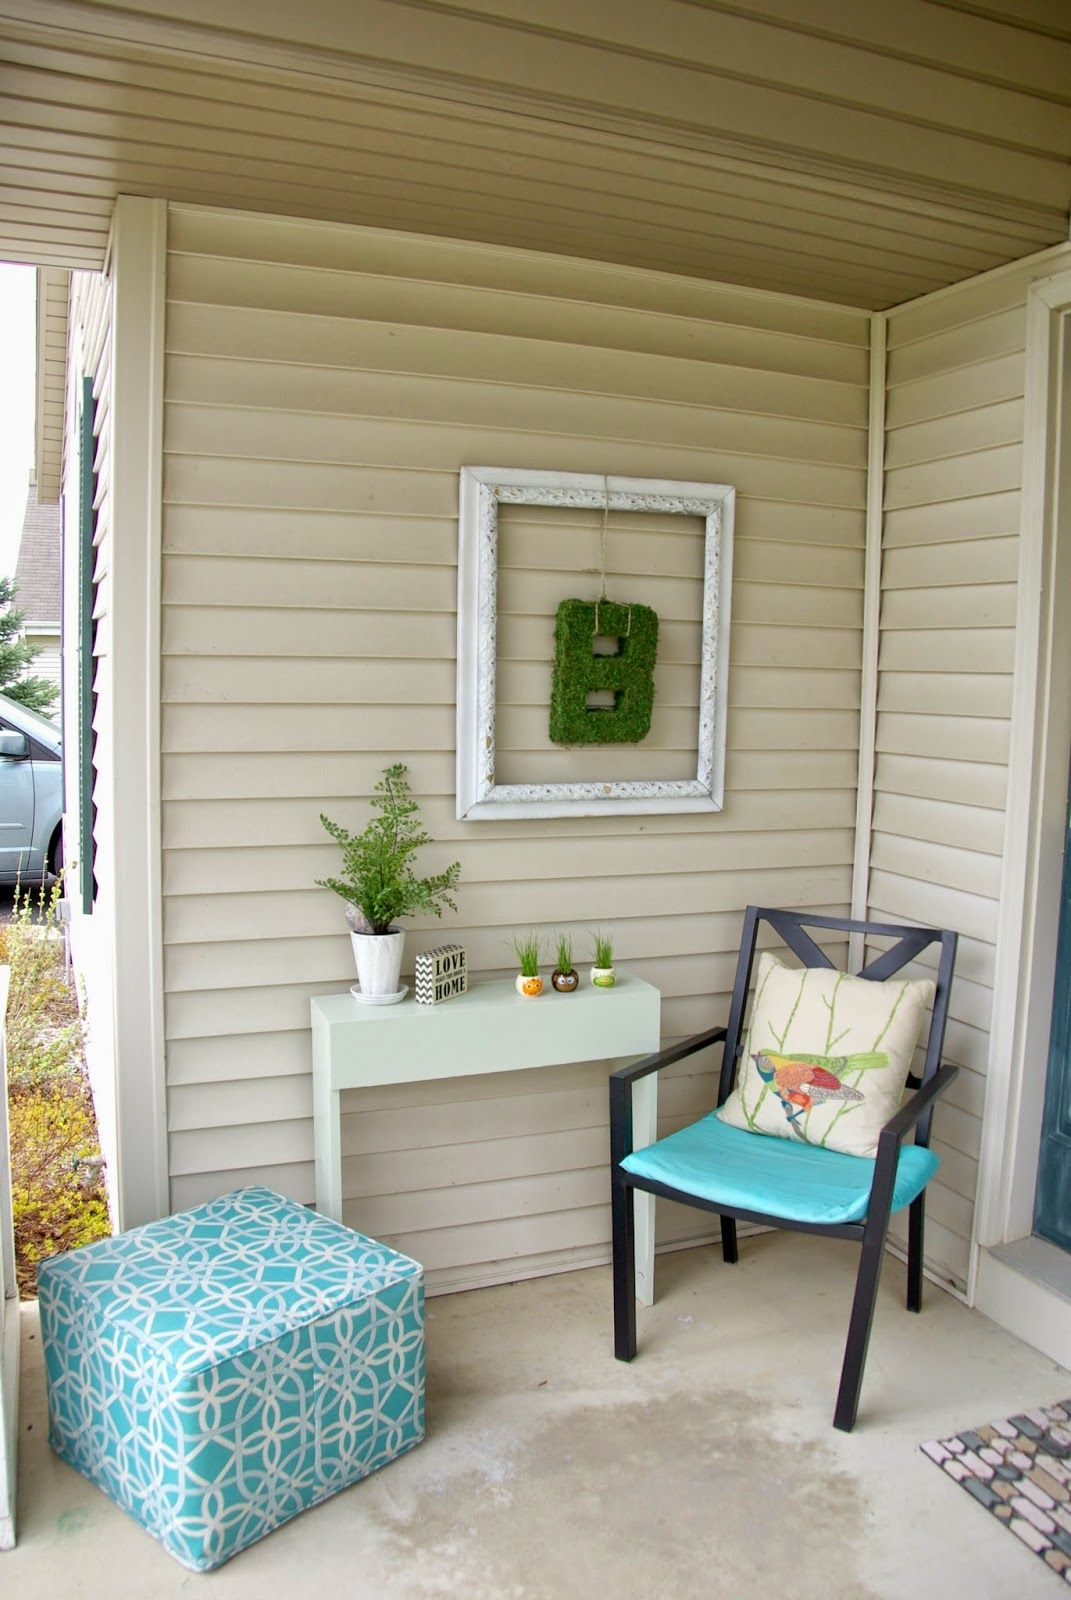 Revamping the front porch summer porch ideas summer for Indoor patio decorating ideas